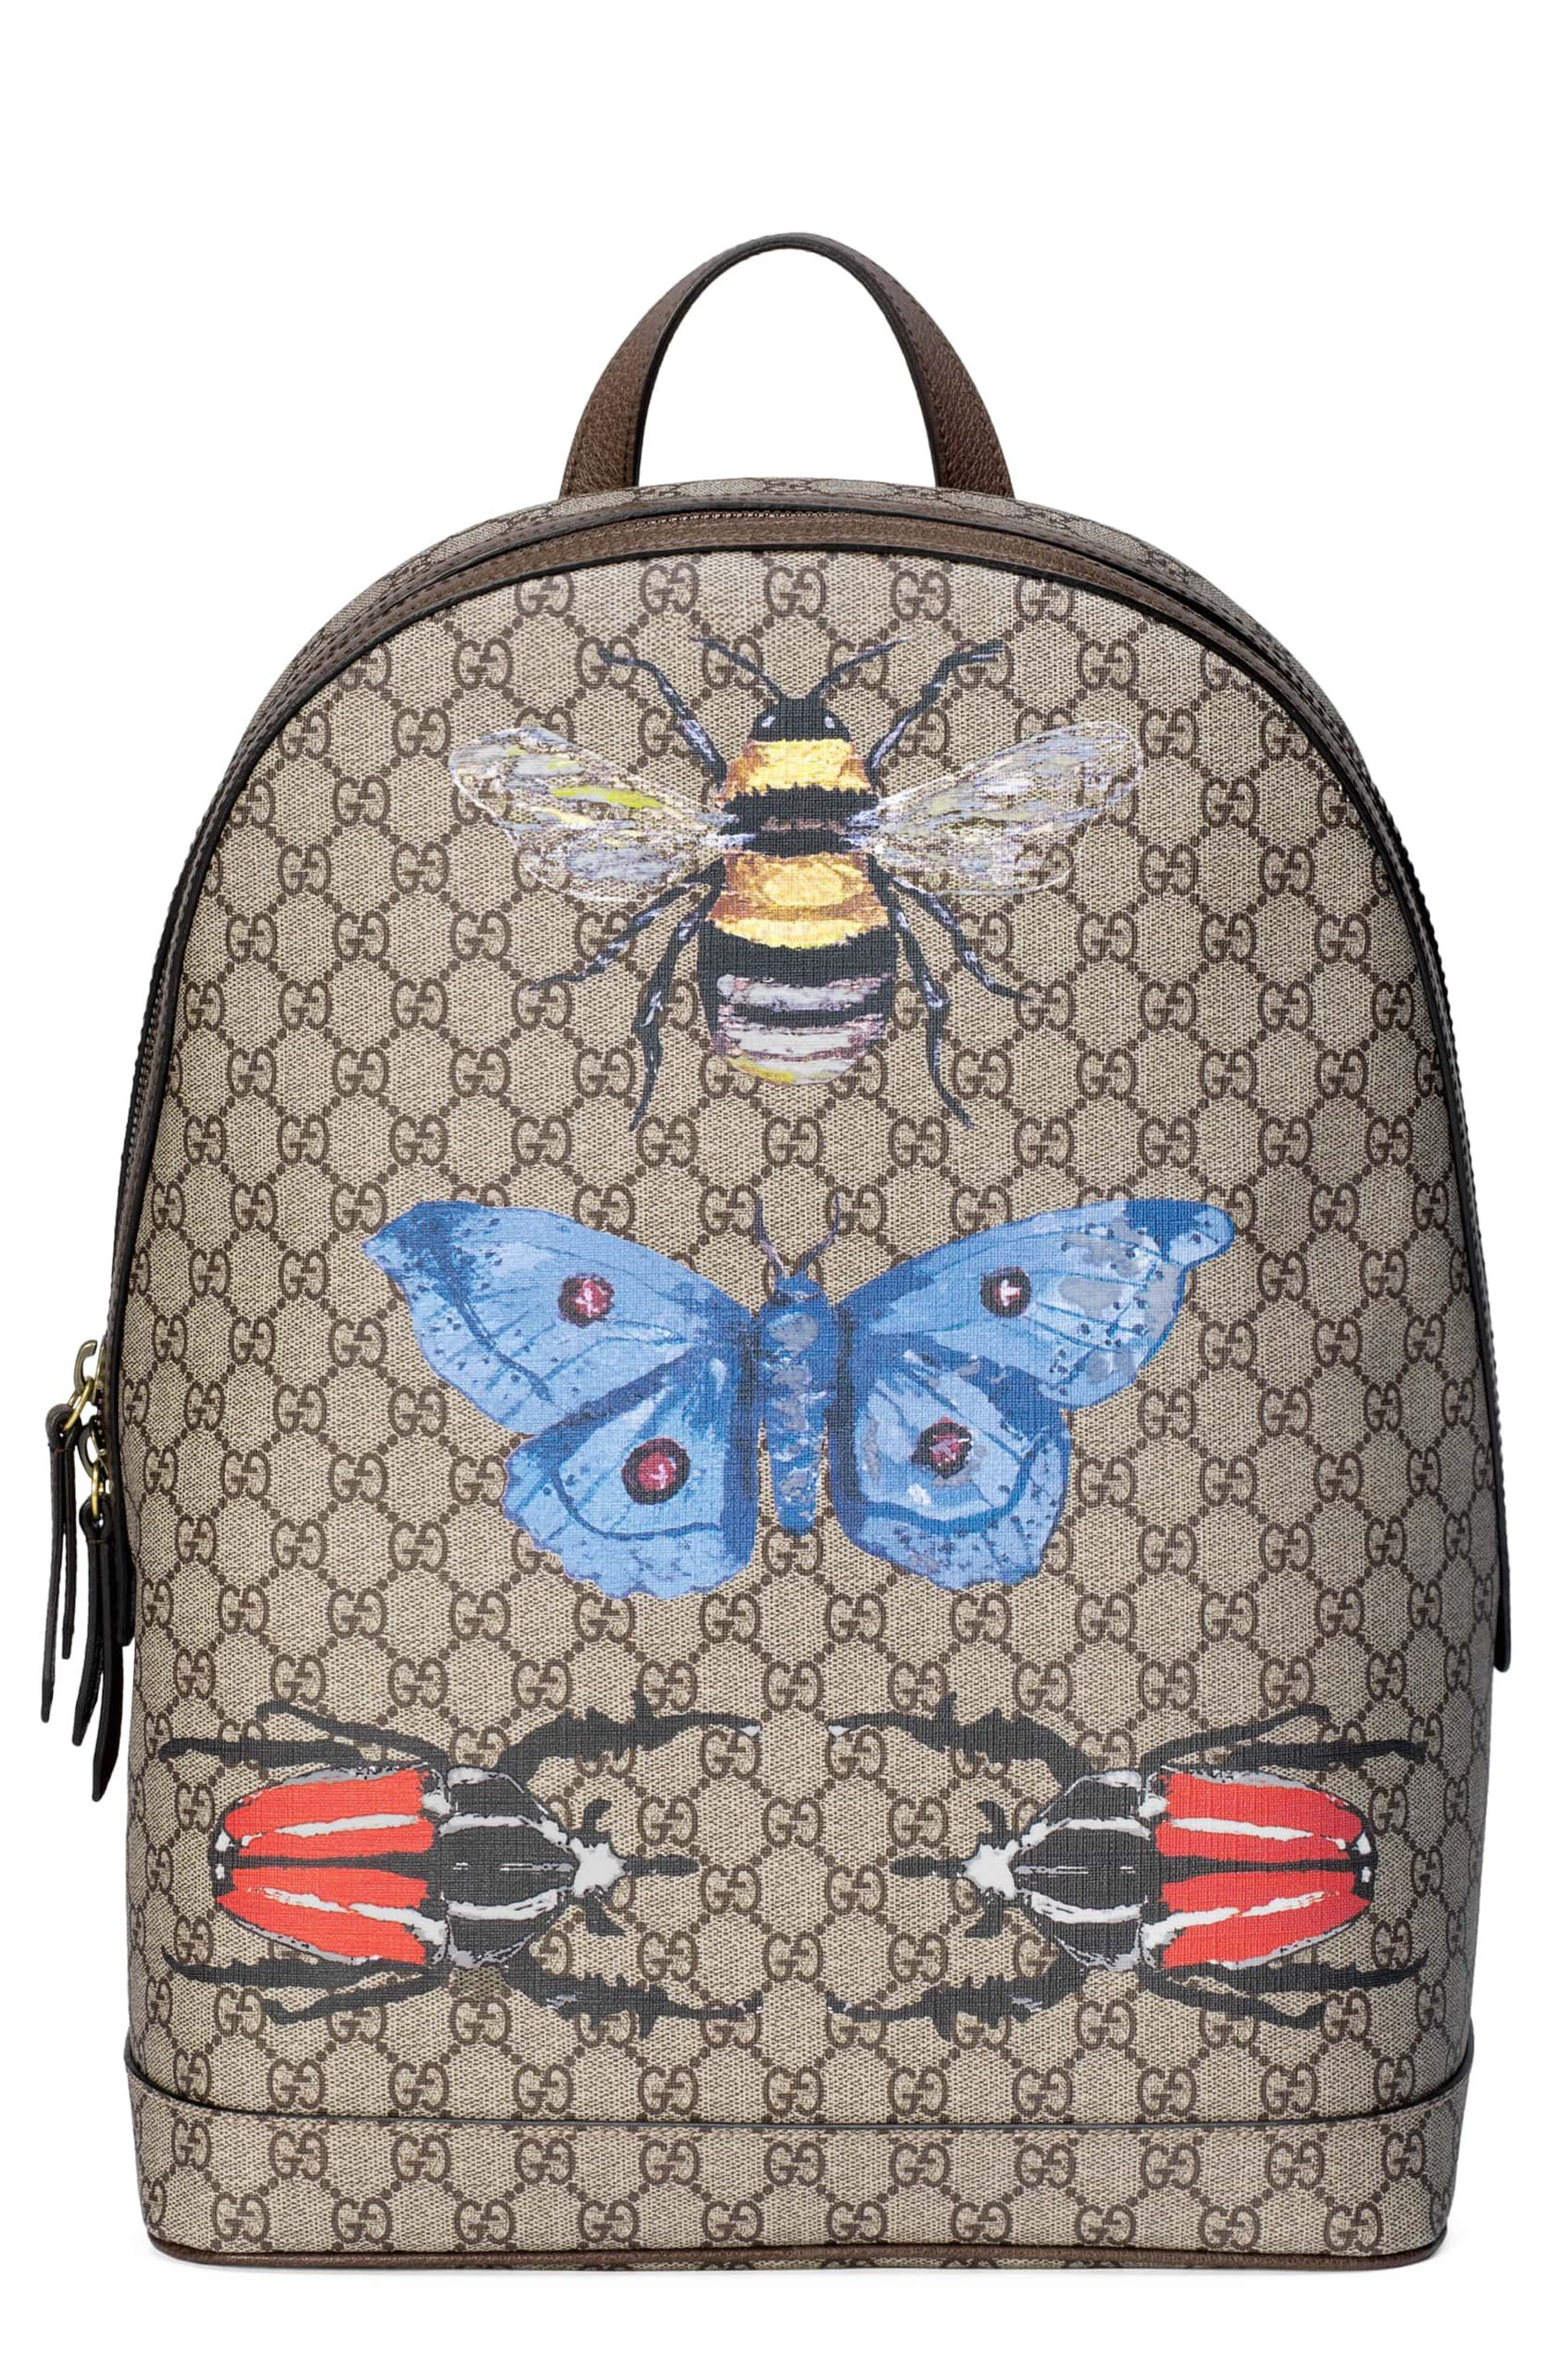 Insect Print GG Supreme Canvas Backpack,                         Main,                         color, 161